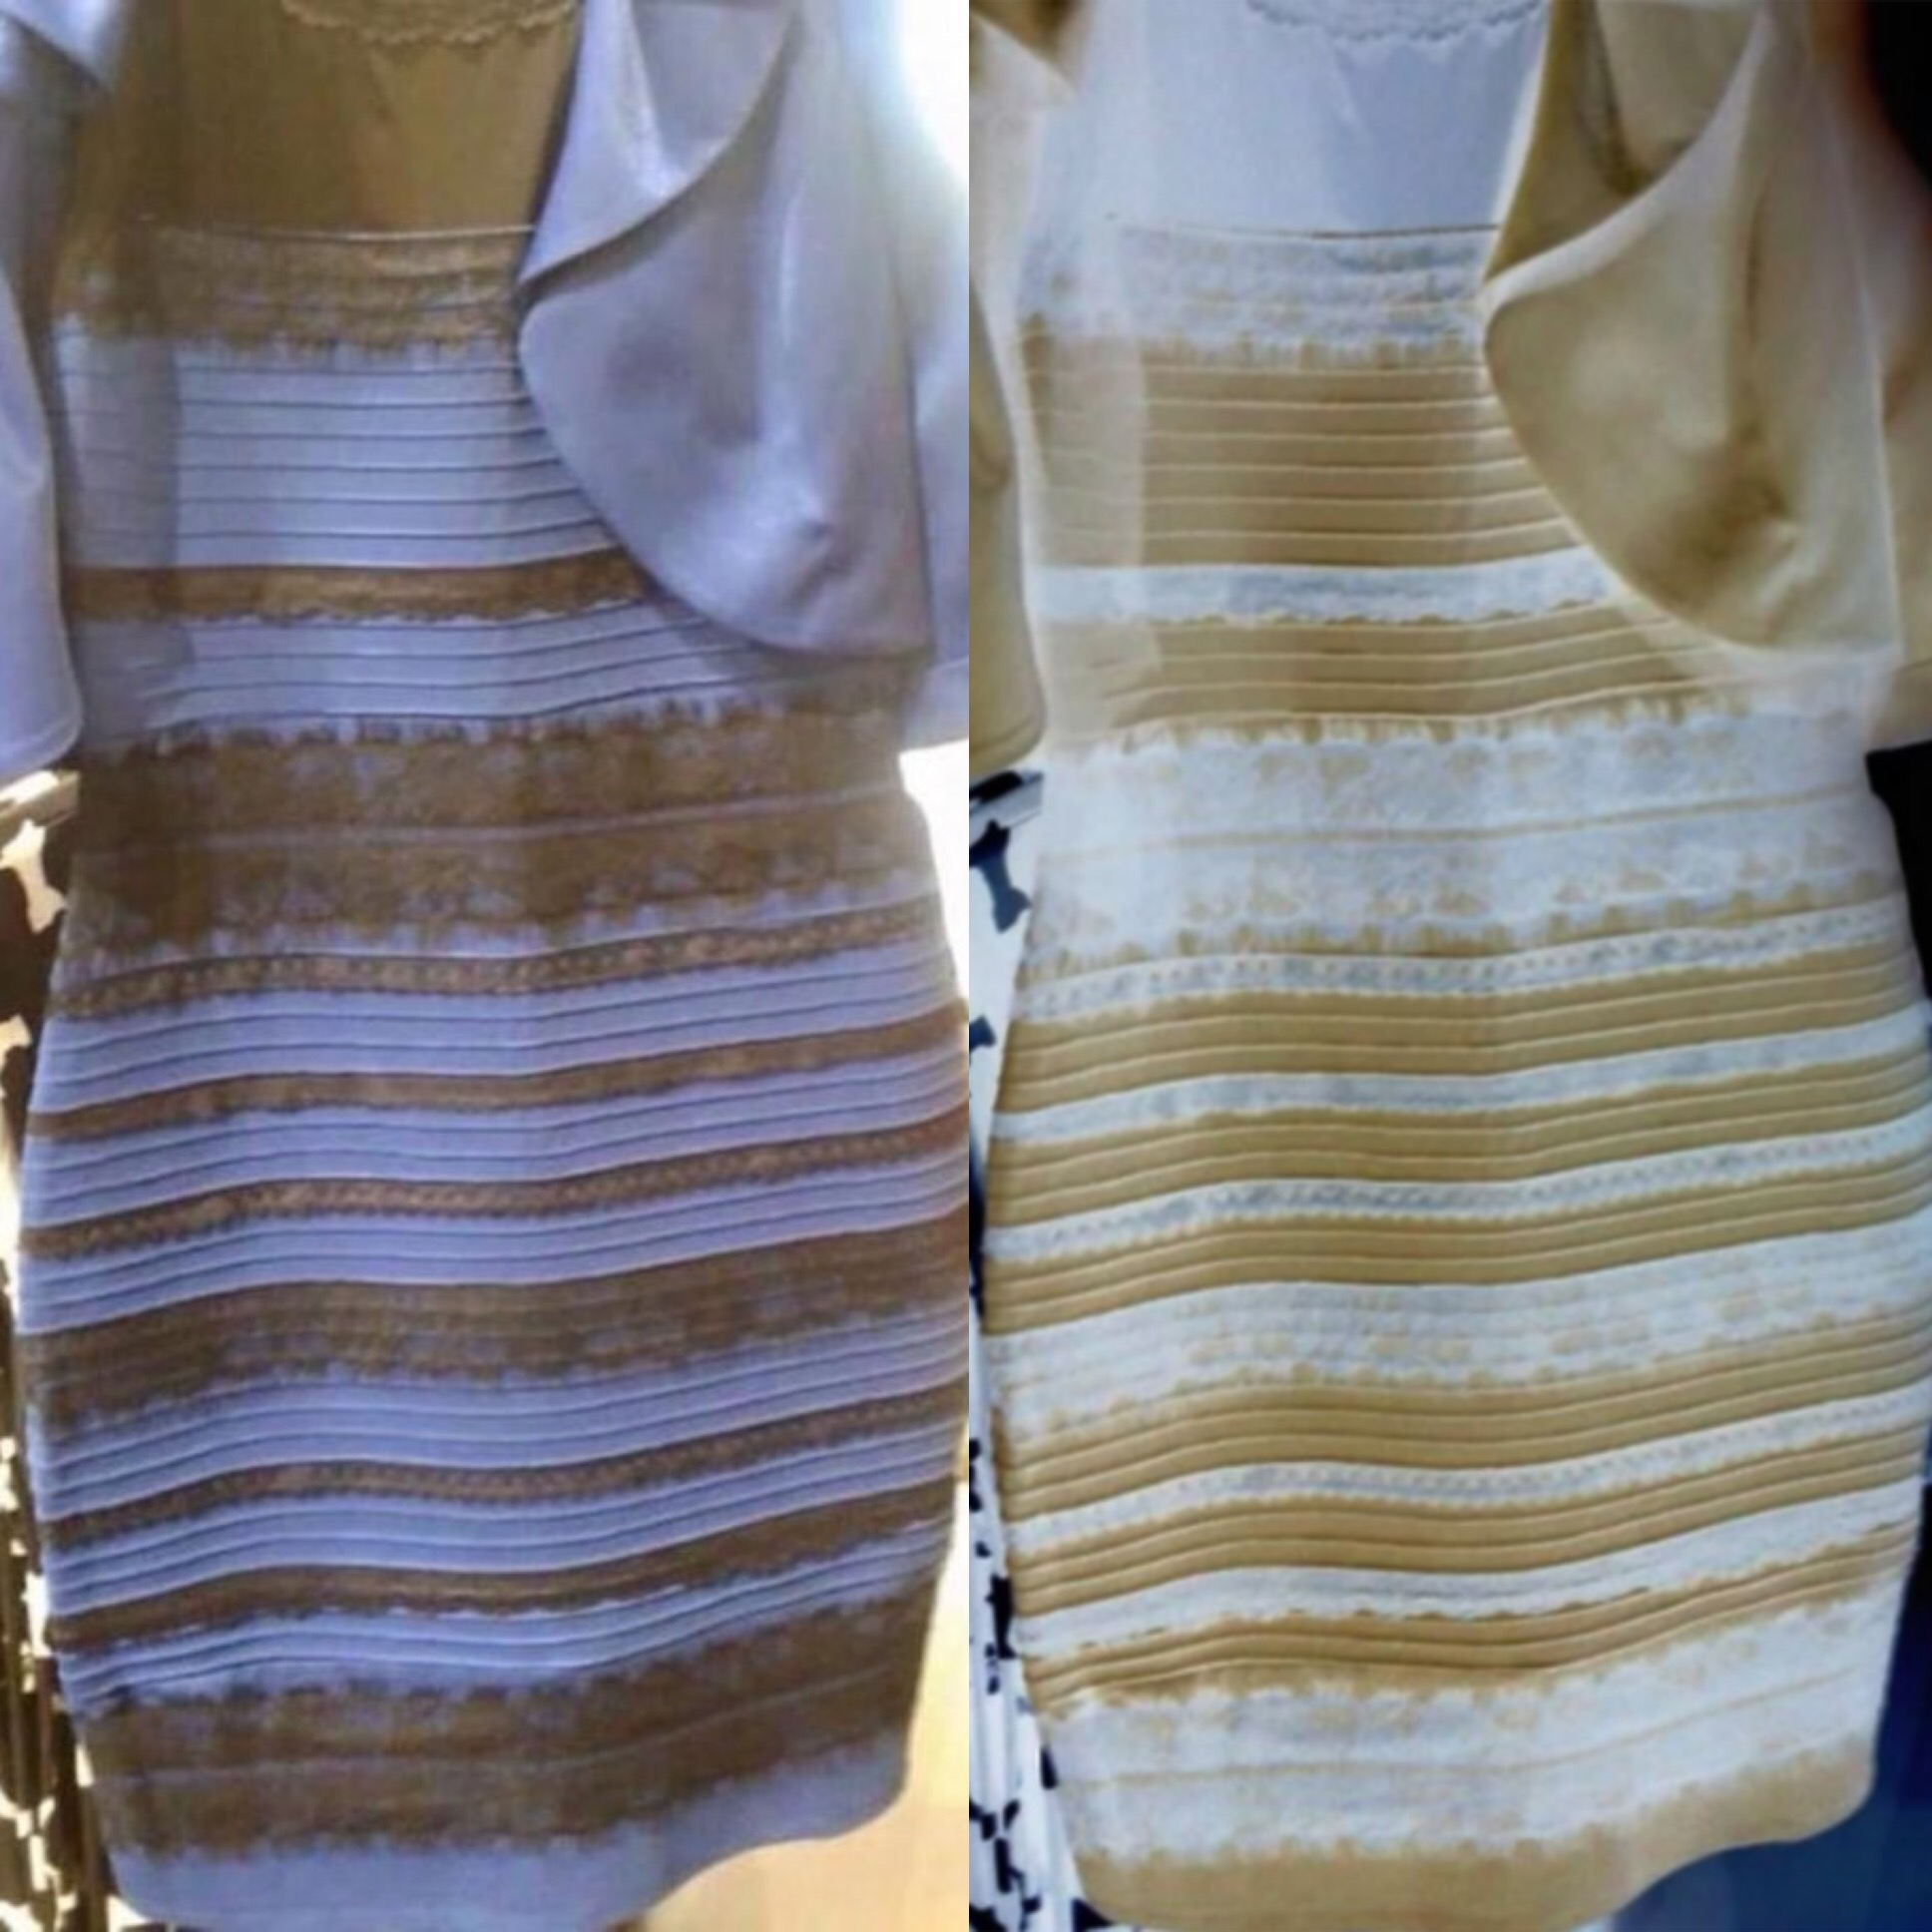 the black and blue